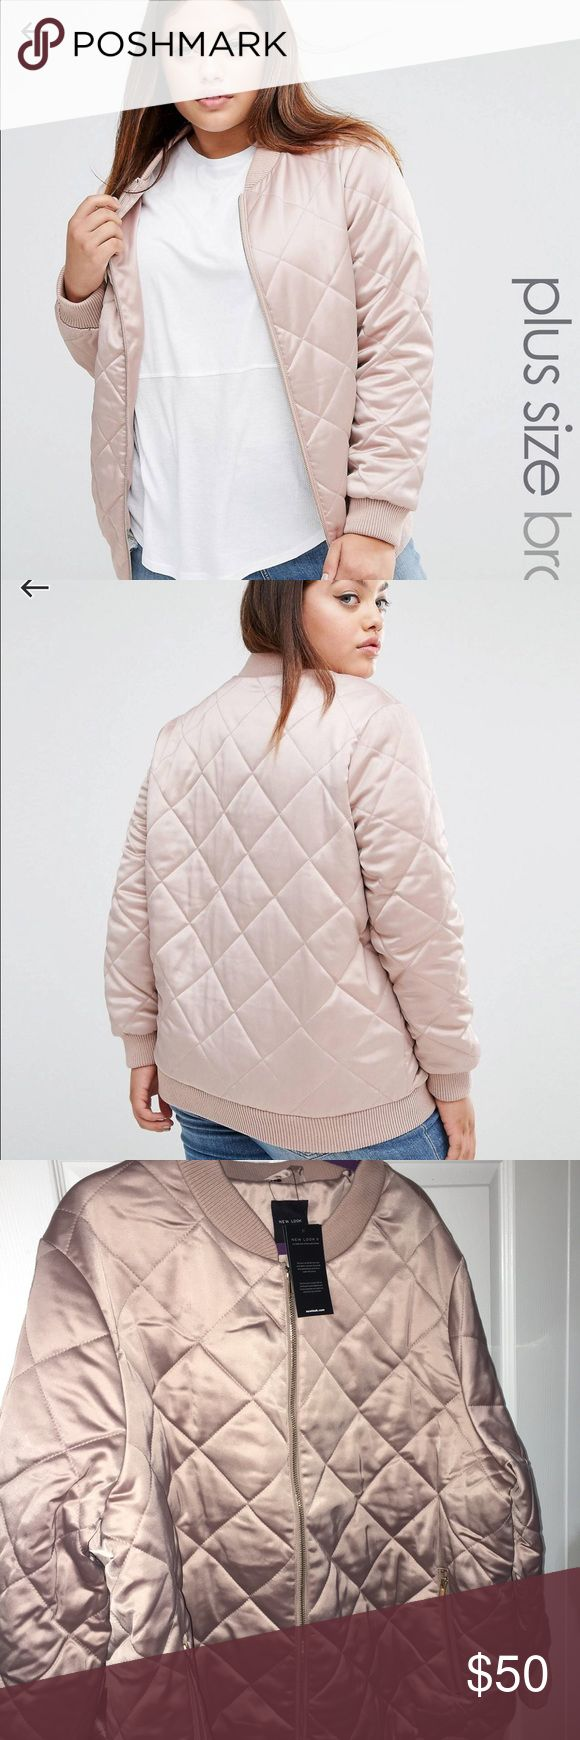 Pink Rosegold bomber Brand new with tags beautiful blush satin bomber never been worn it is a size 24 U.S. And 28 U.K. It's more of a rose gold color. Fit is between 22/24 newlook/Asos ASOS Curve Jackets & Coats Puffers